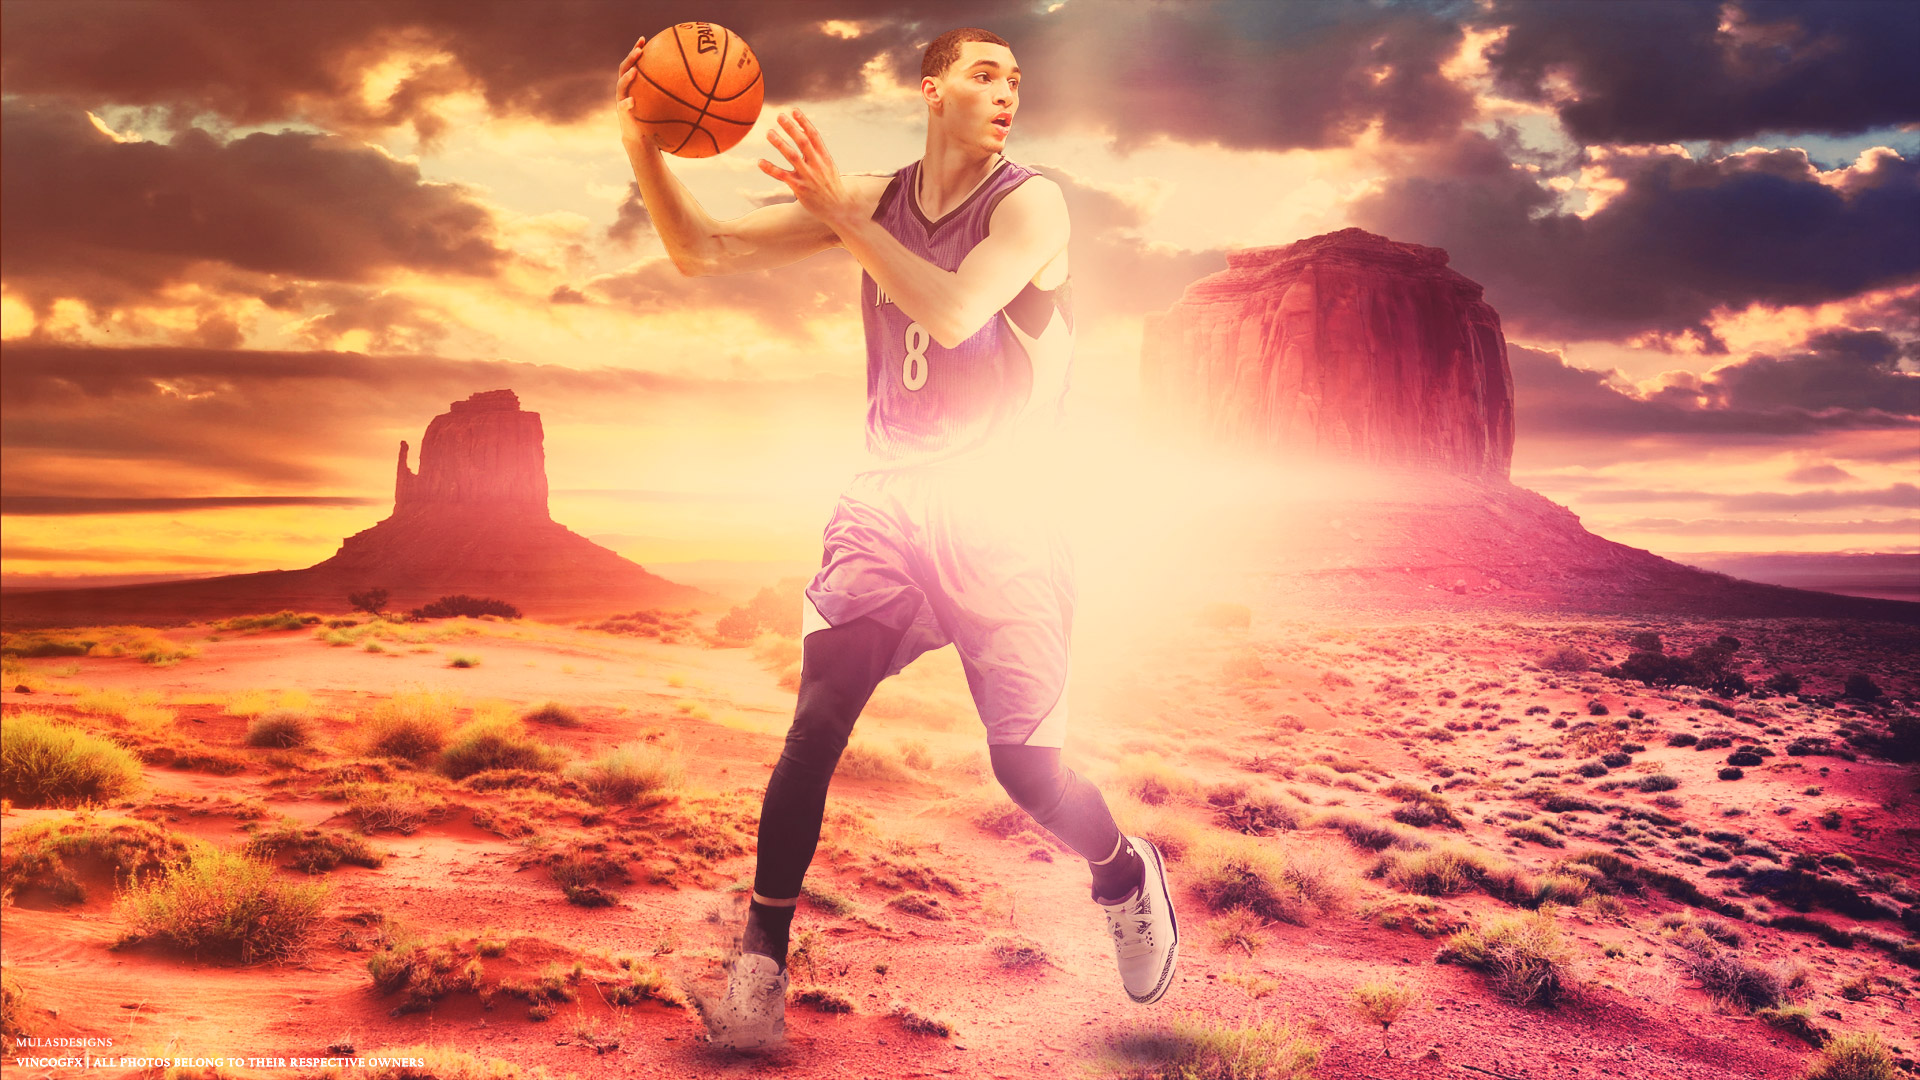 Zach LaVine Timberwolves 2015 1920x1080 Wallpaper